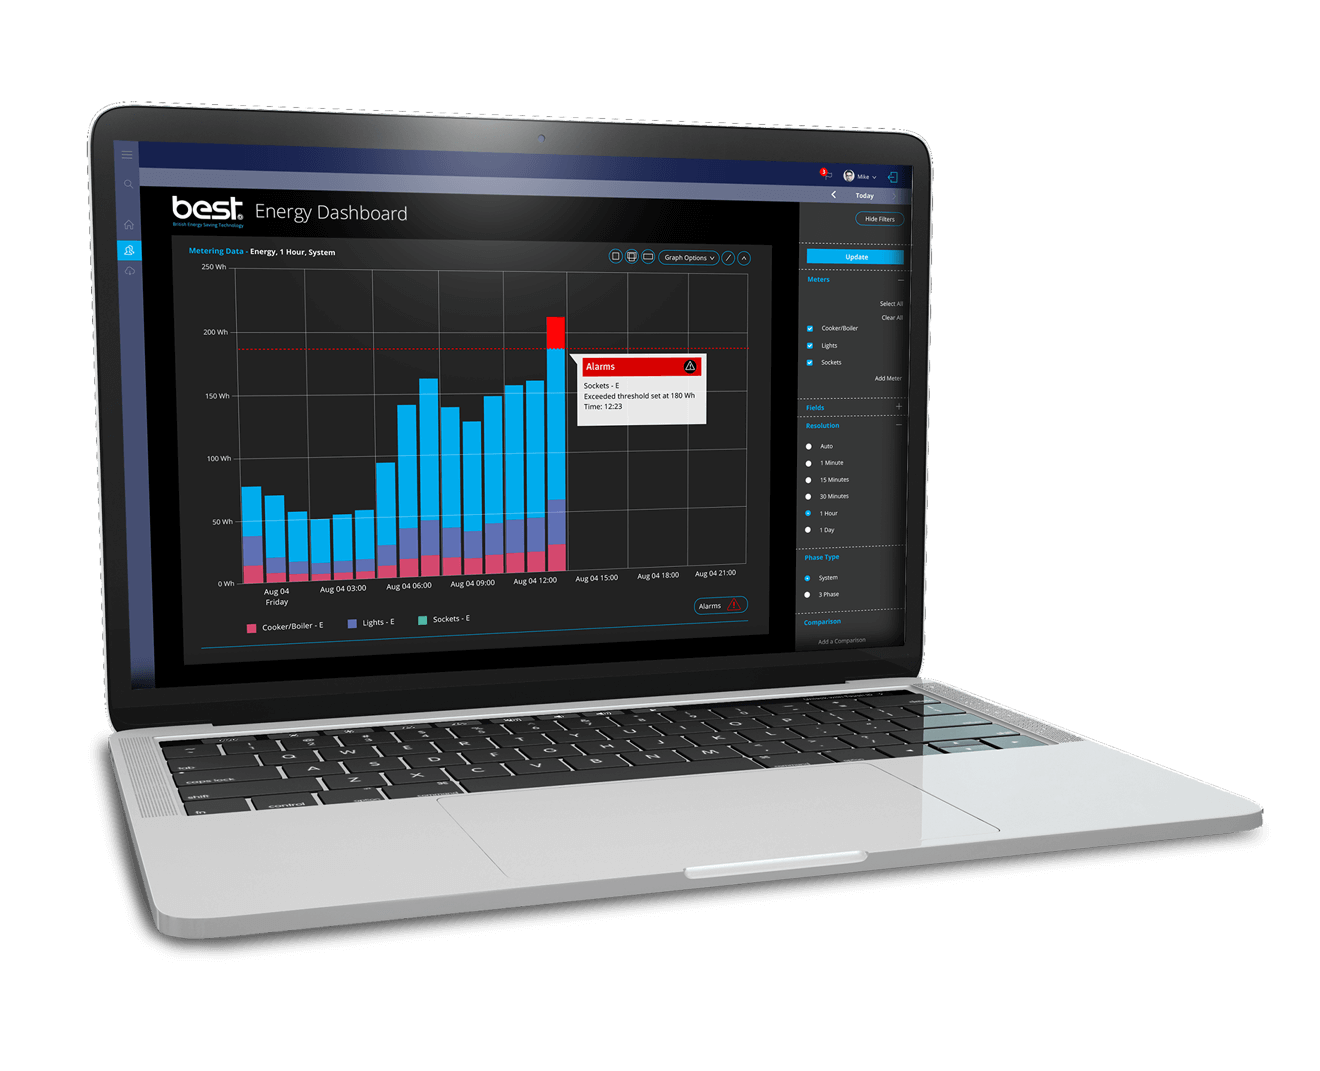 laptop energy management in the UAE